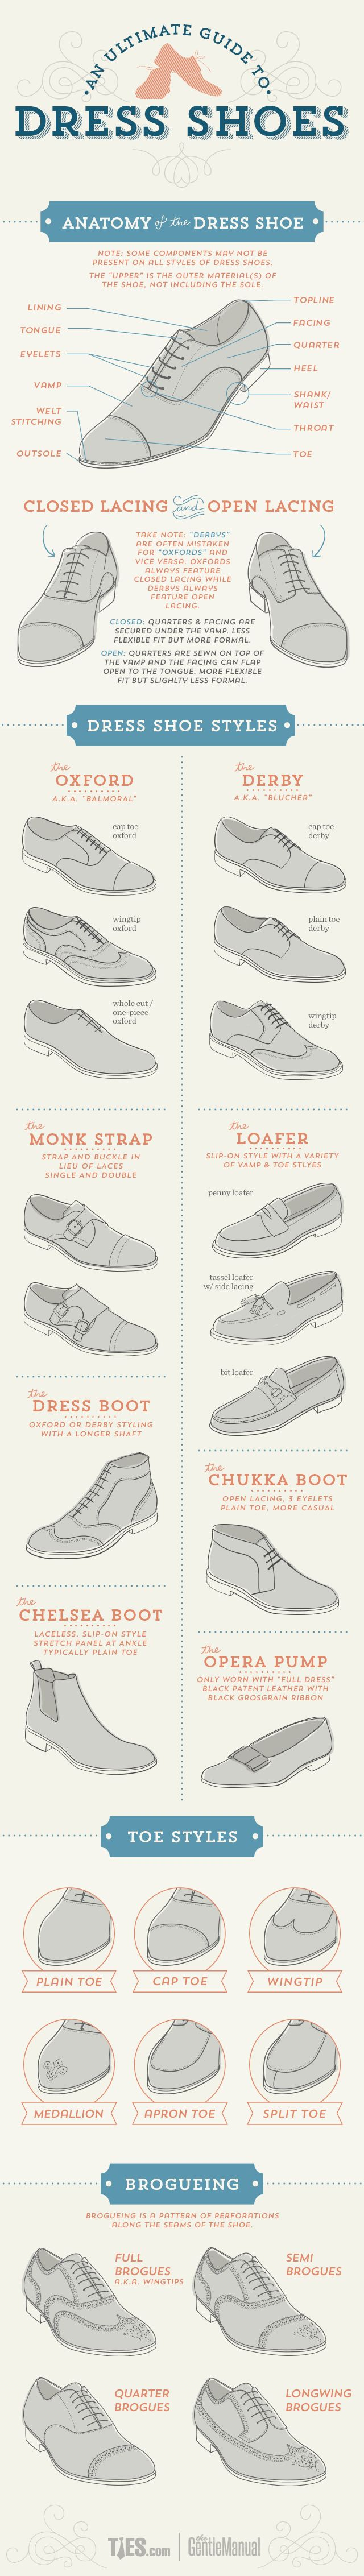 8 Types of Mens Dress Shoes to Cover All Occassions